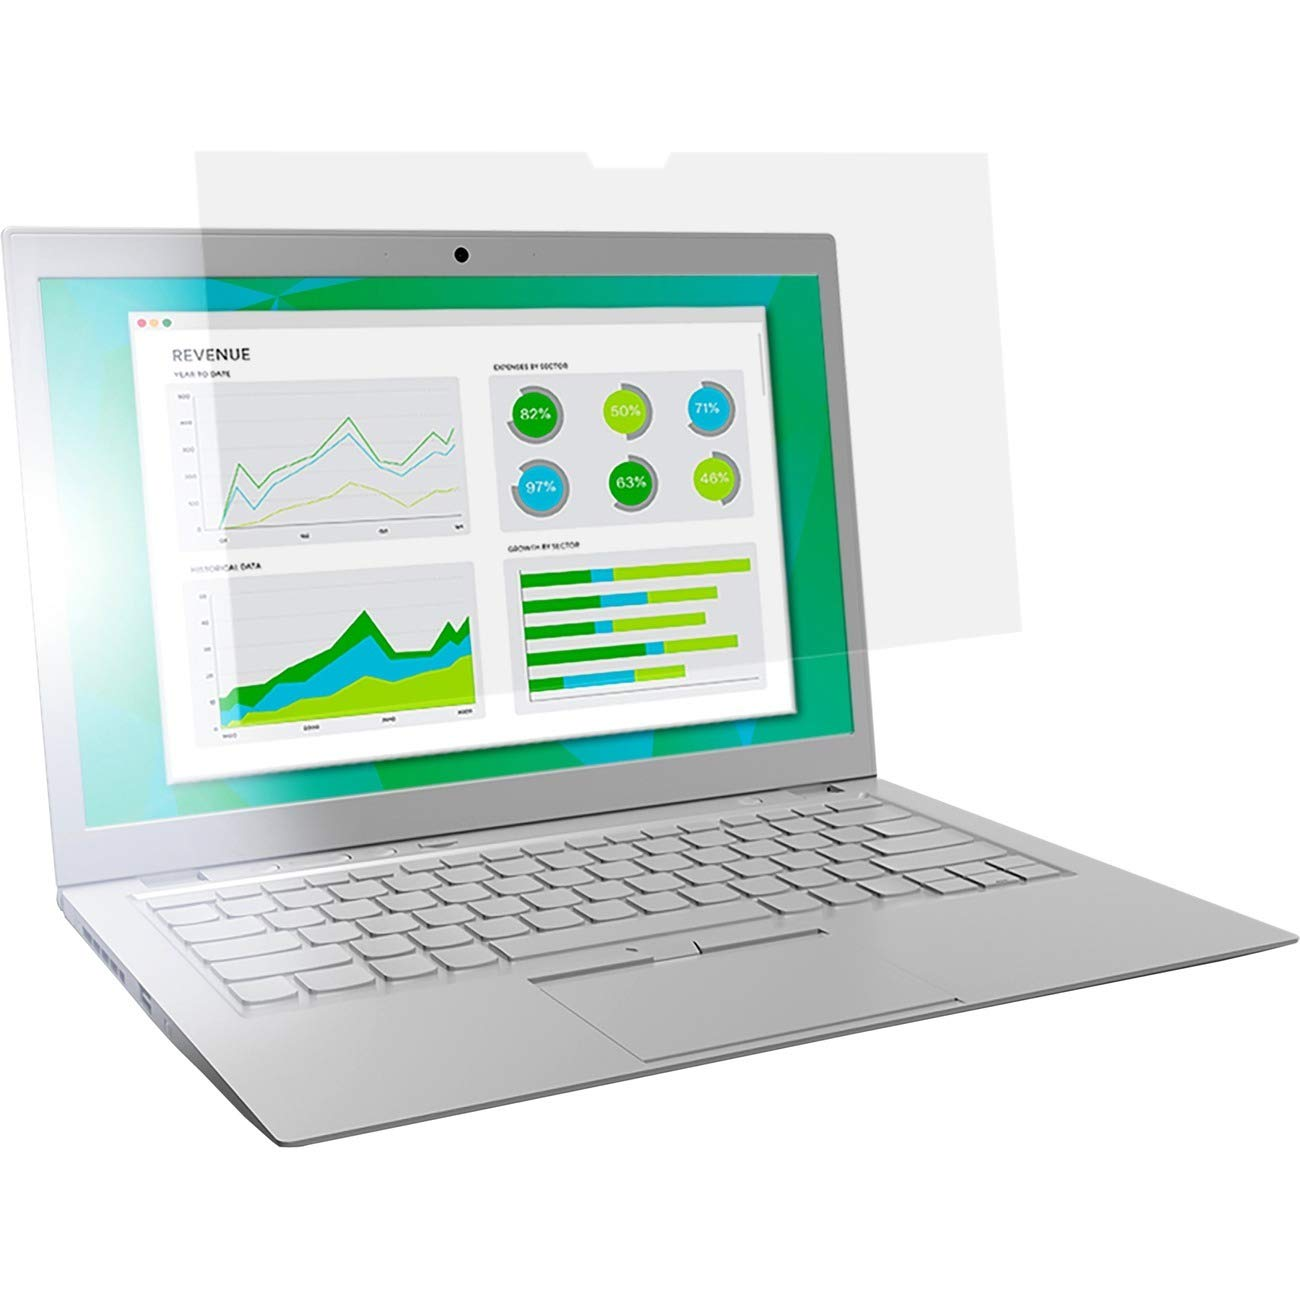 3M Anti-Glare Filter for 17.3'' Widescreen Laptop (AG173W9B)